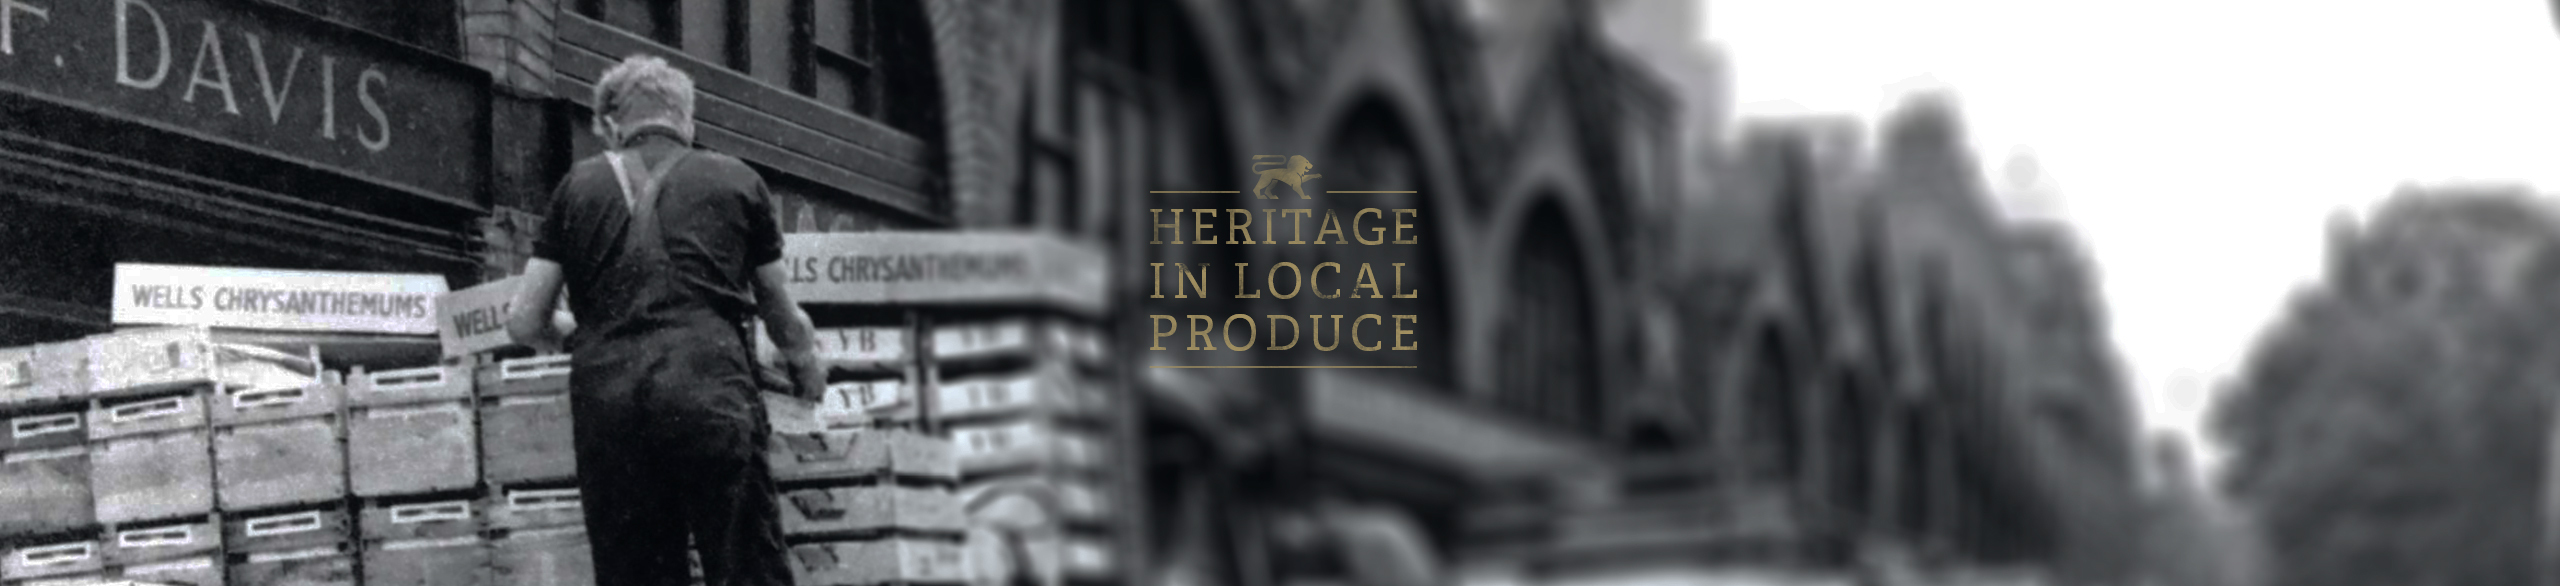 Our heritage banner